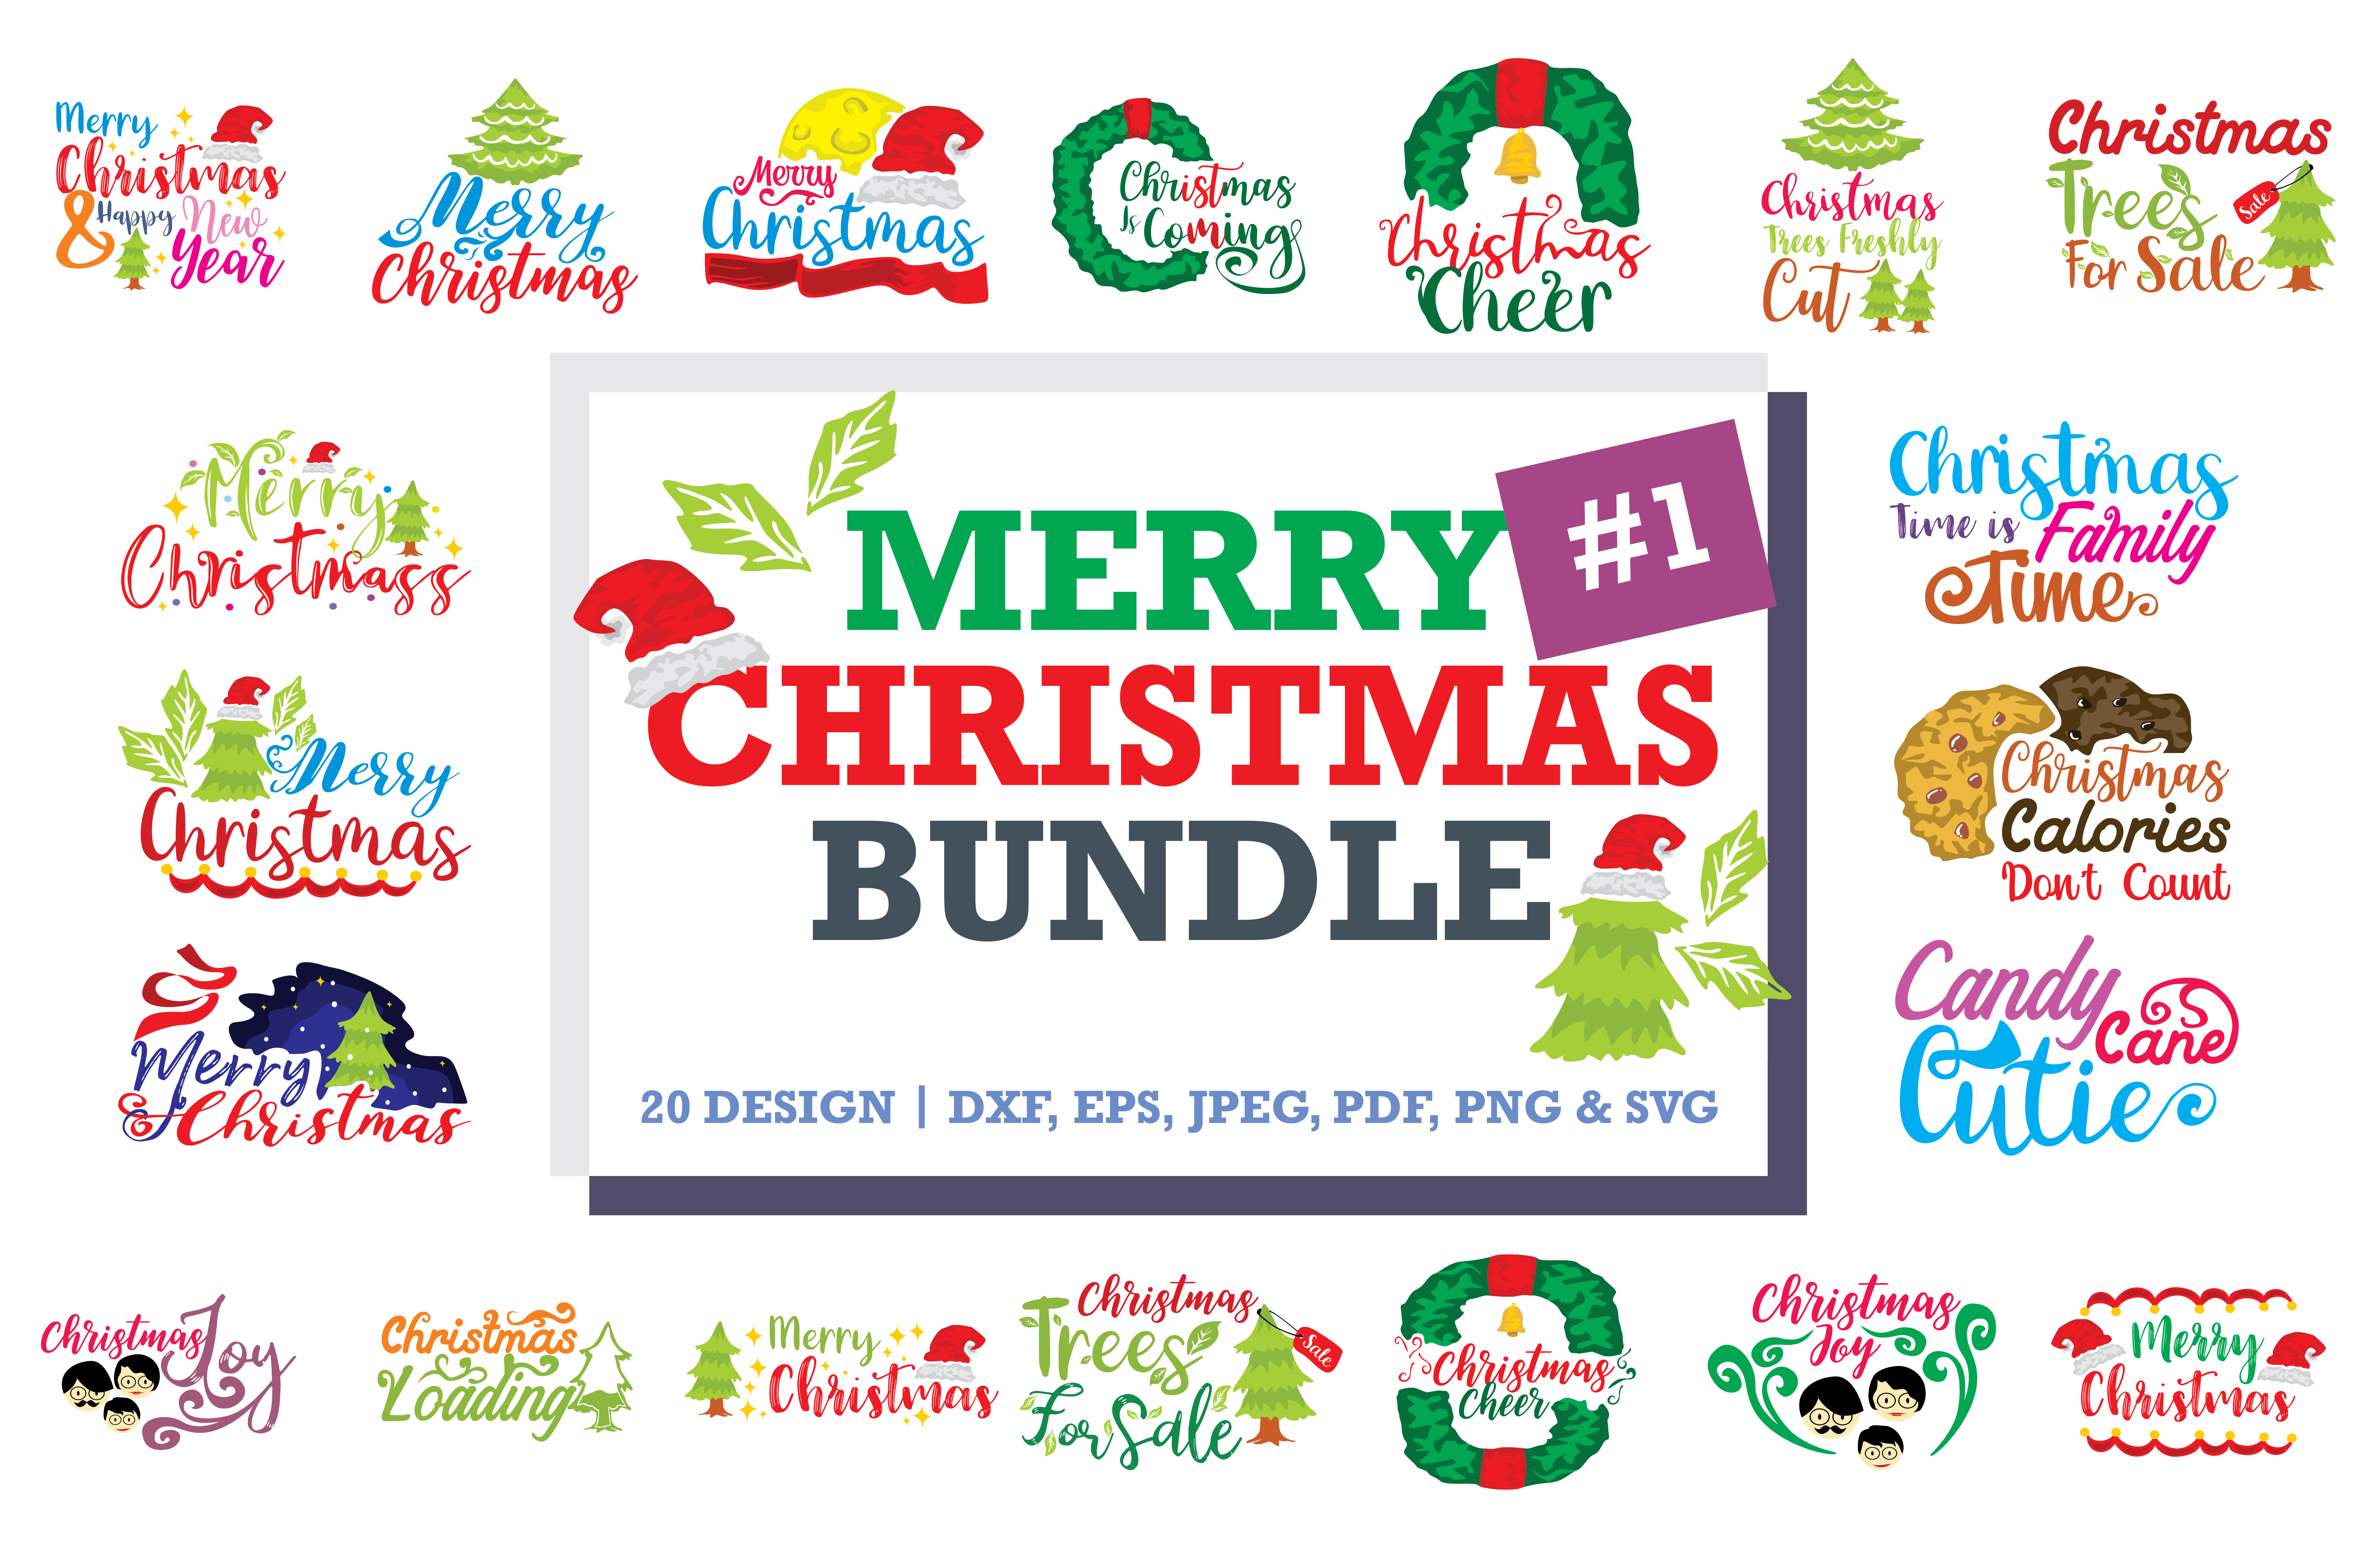 Download Free Christmas Quotes Bundle Graphic By Thelucky Creative Fabrica for Cricut Explore, Silhouette and other cutting machines.